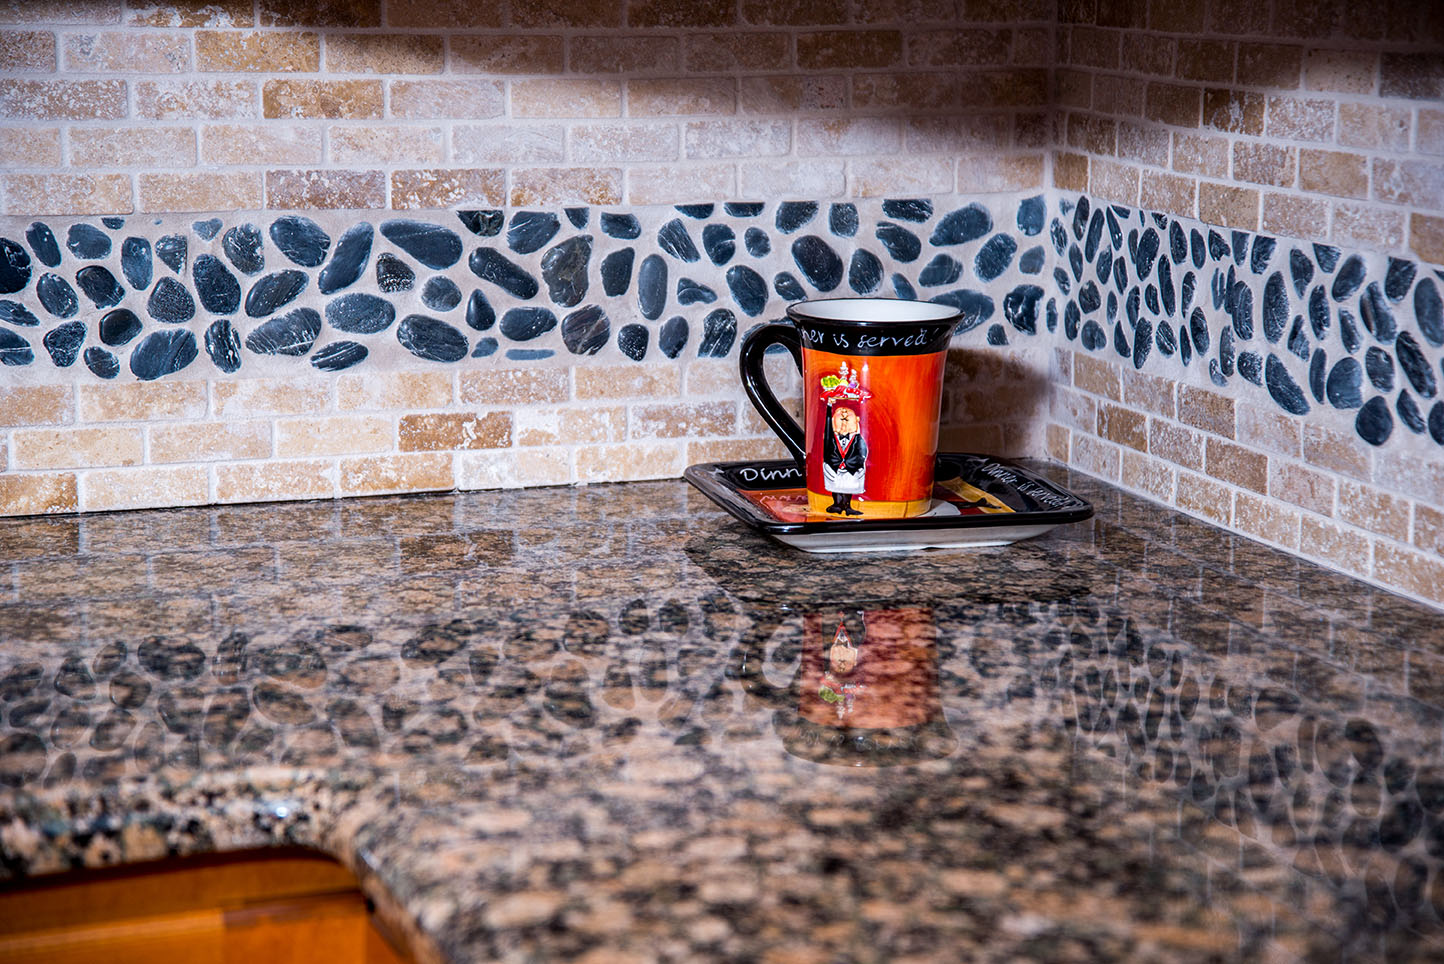 Countertops made from the classy Baltic Brown granite.  Baltic Brown displays the full array of beauty offered by granite.